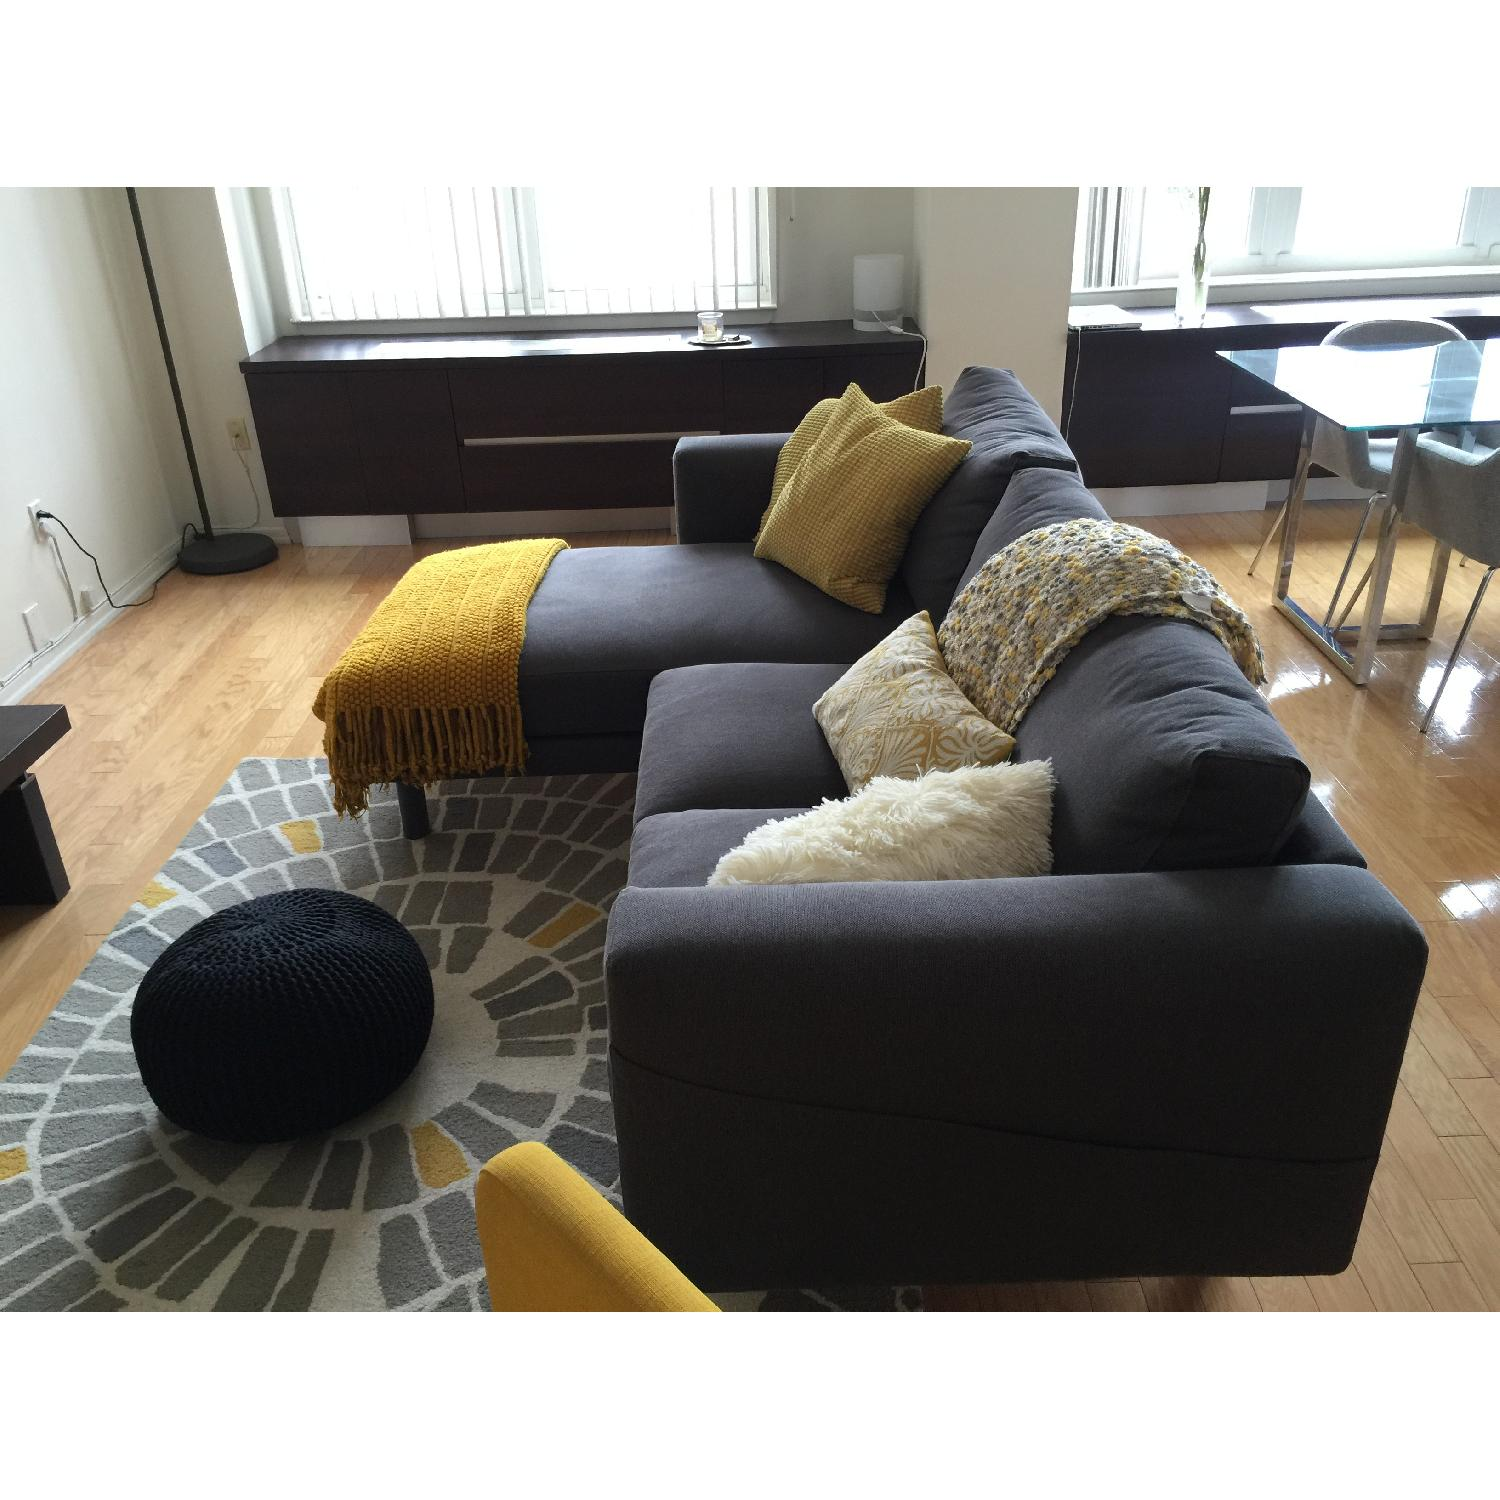 Ikea Sectional Couch - image-7